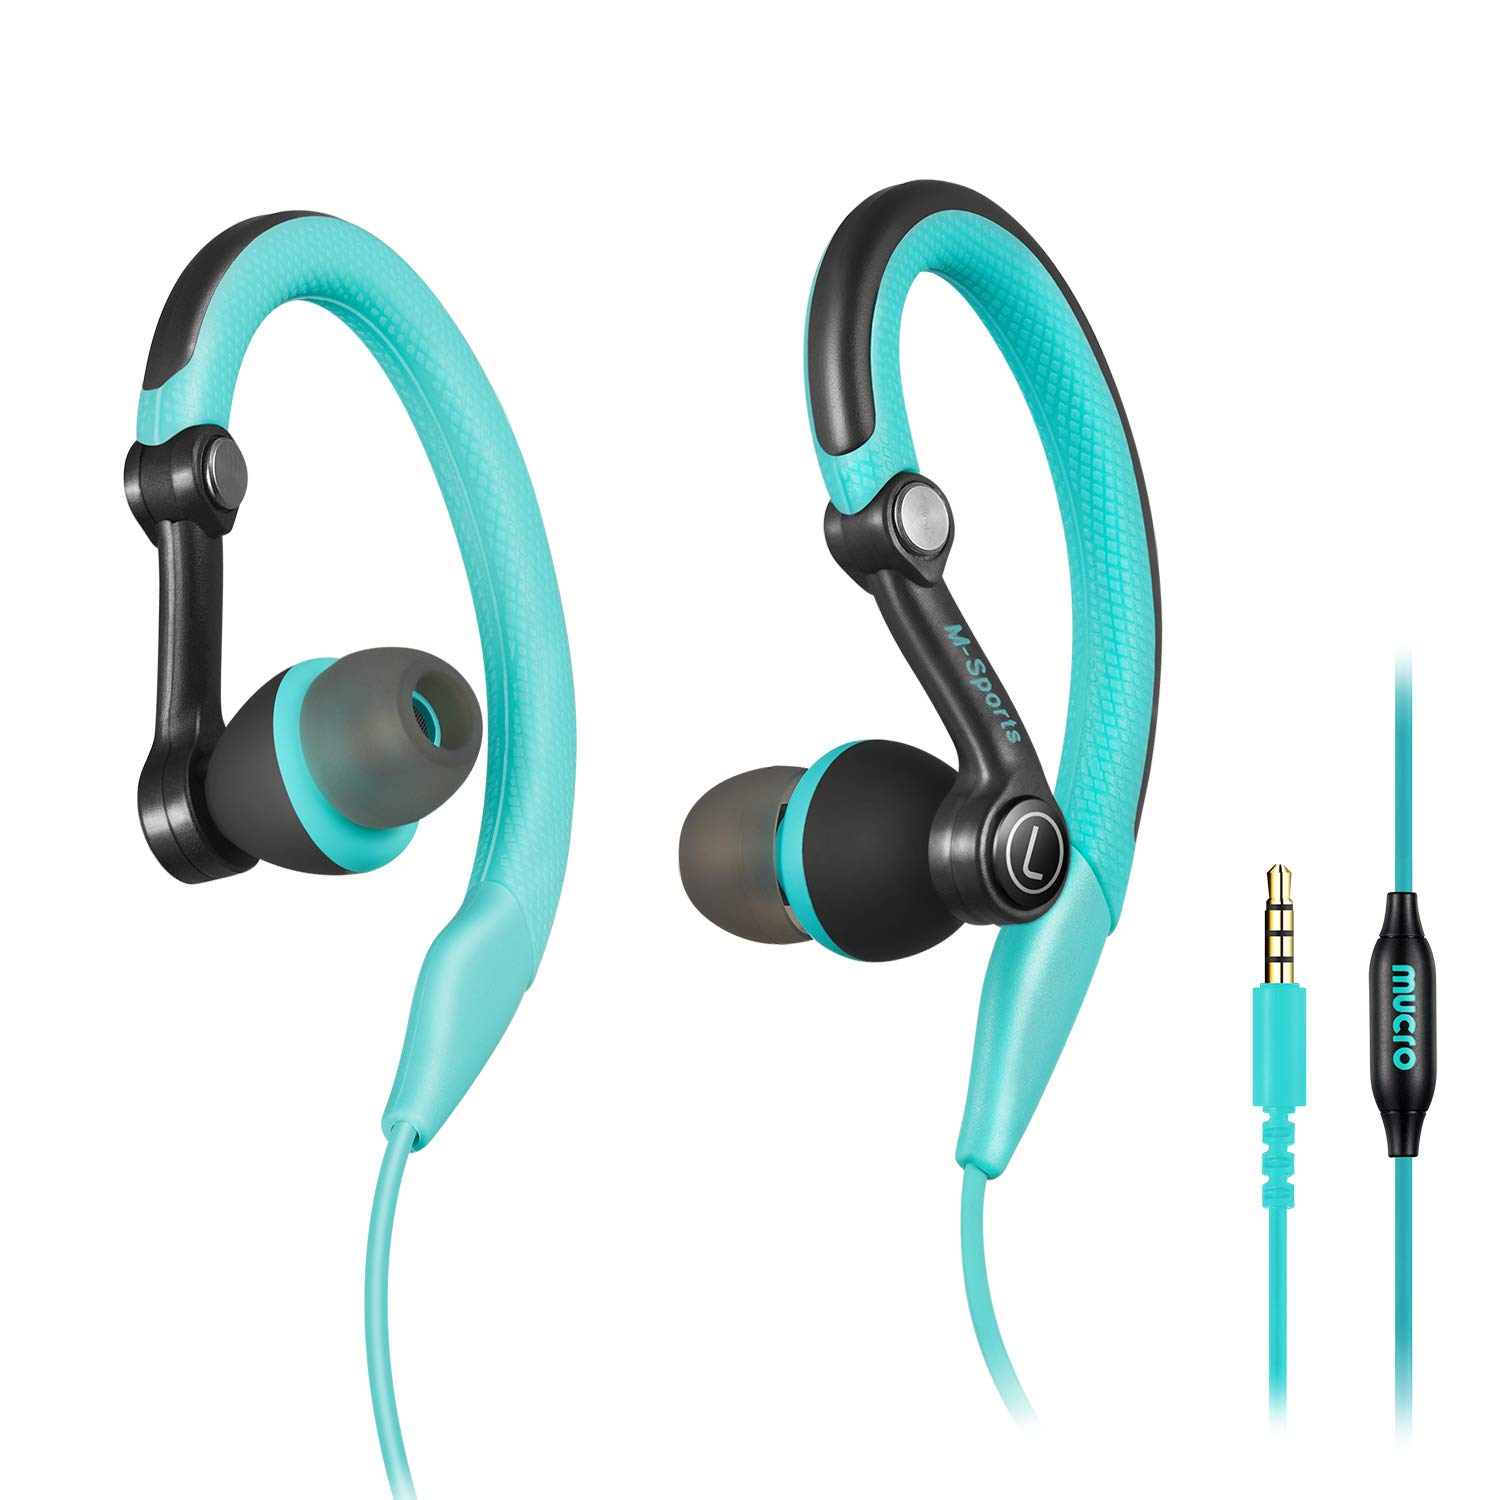 mucro Running Headphones Over Ear in Ear Sport Earbuds Earhook Wired Stereo Workout Ear Buds for Jogging Gym for Samsung Android Phones Tablets (Blue)